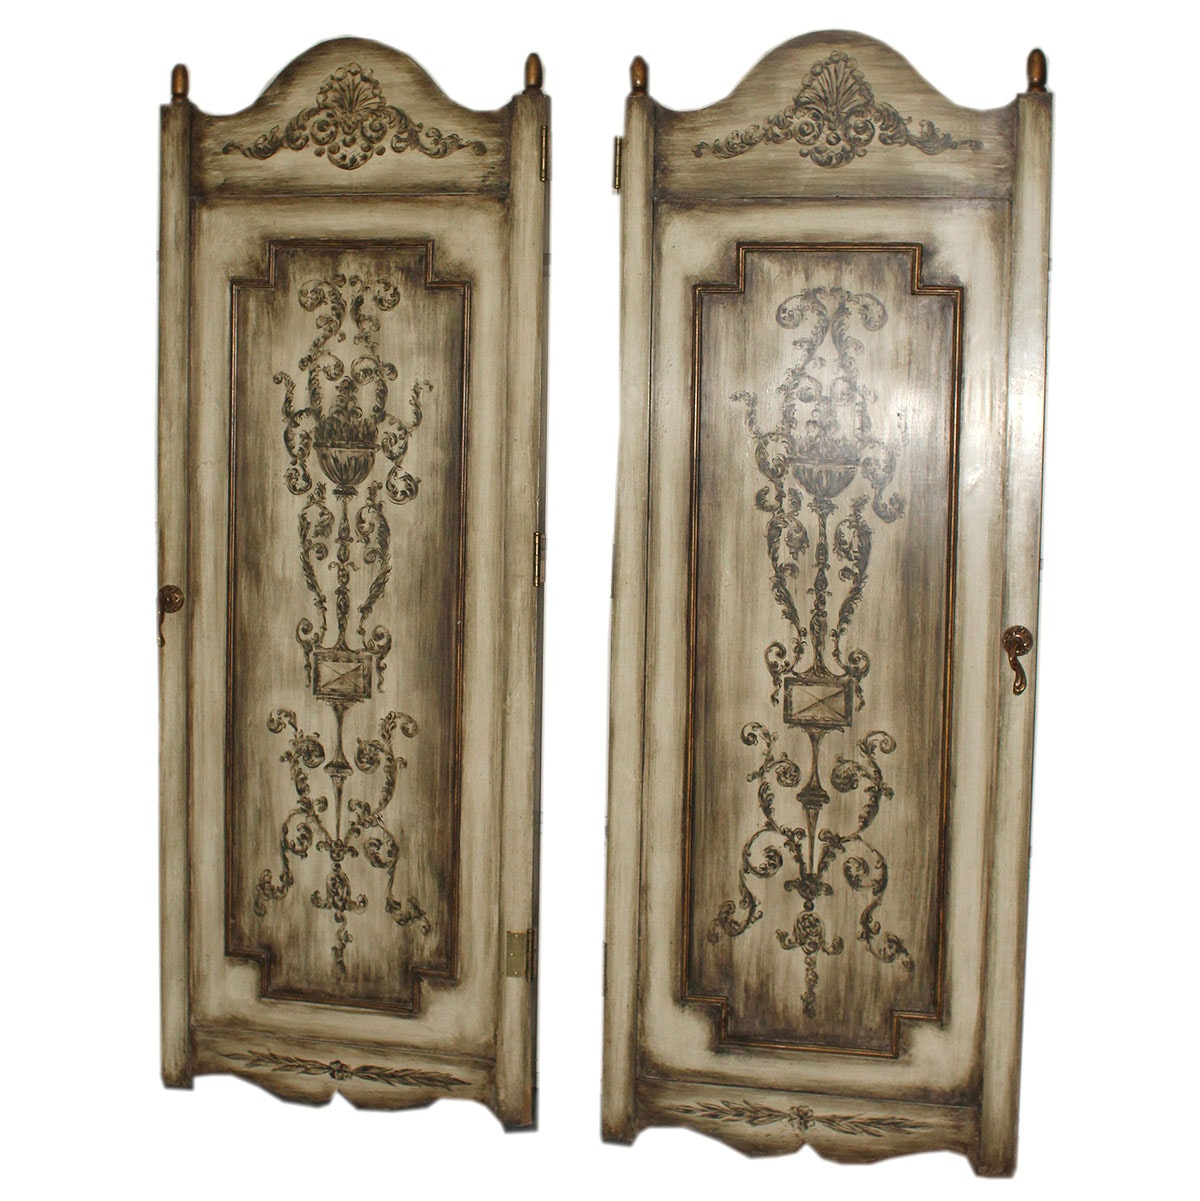 French Provincial Style Architectural Salvage Doors  sc 1 st  Everything But The House & Architectural Artifact Auctions | Architectural Artifacts for Sale ... pezcame.com